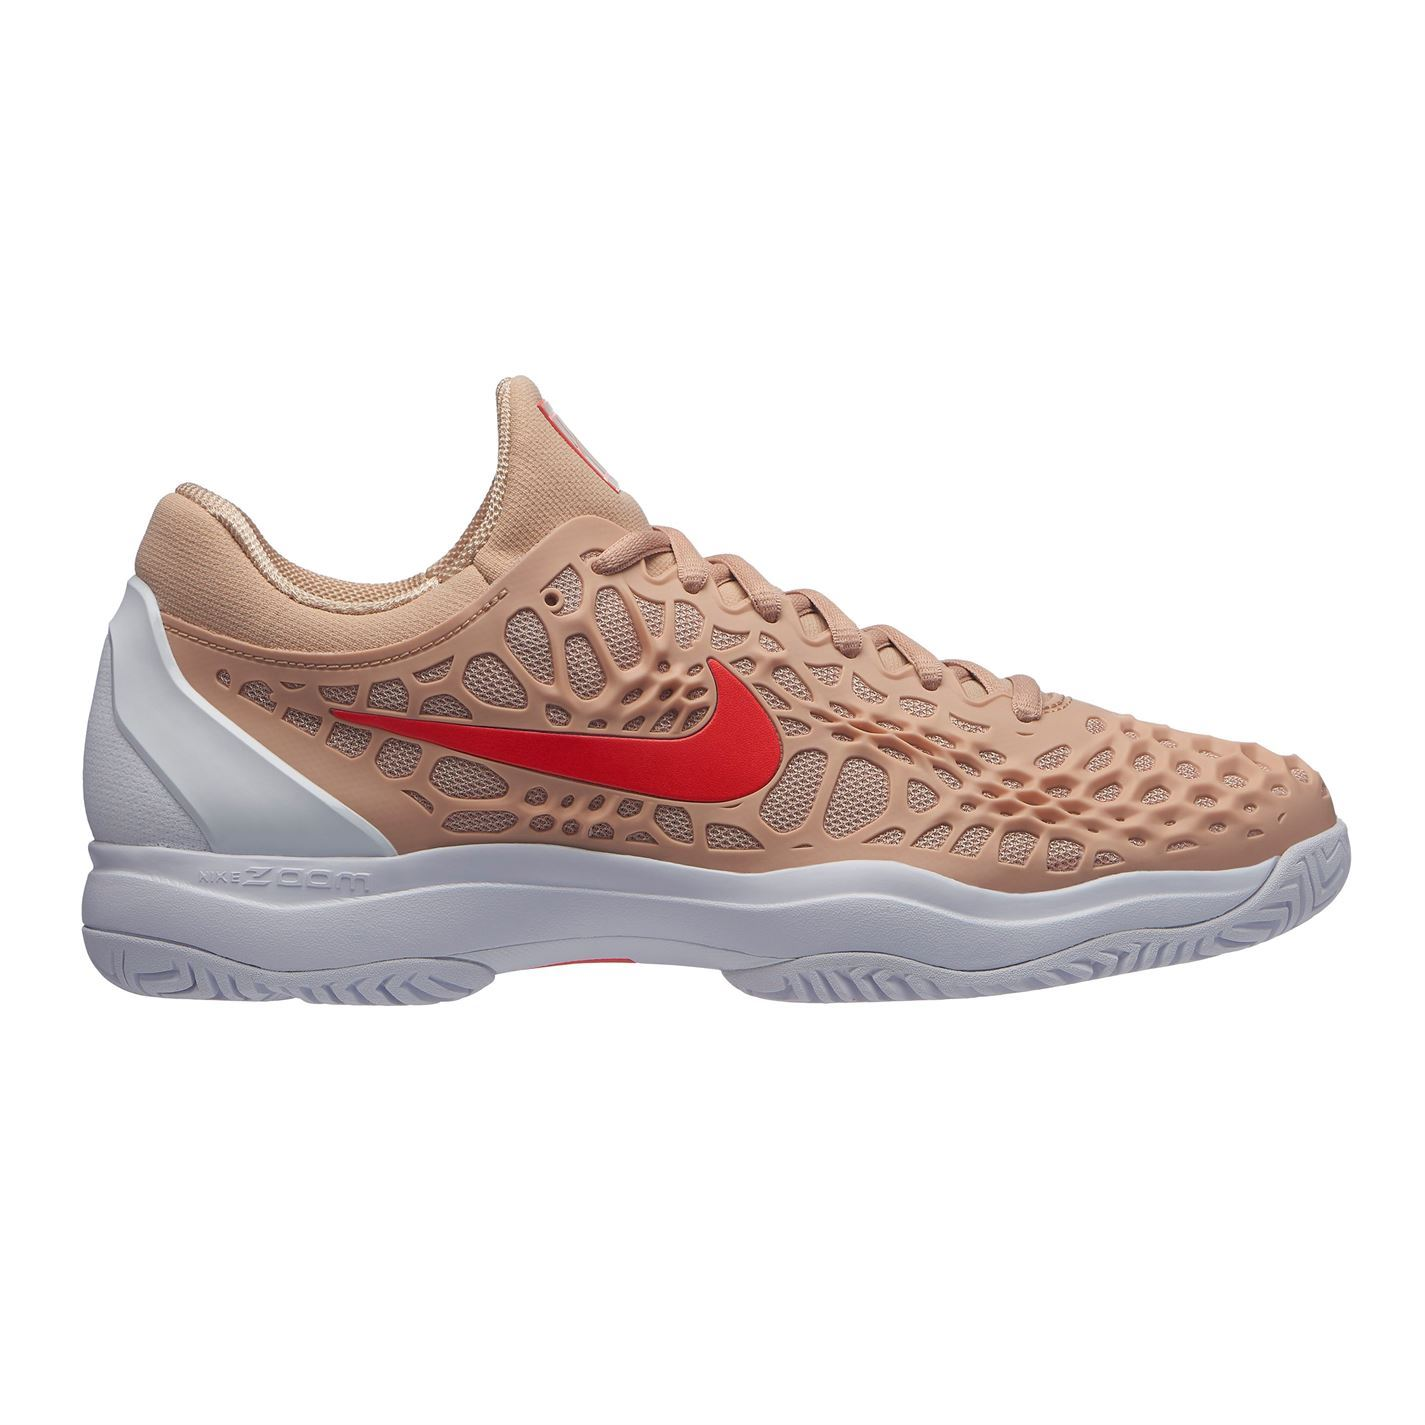 Details about Nike Air Zoom Cage 3 Tennis Shoes Mens Sports Footwear Trainers Sneakers